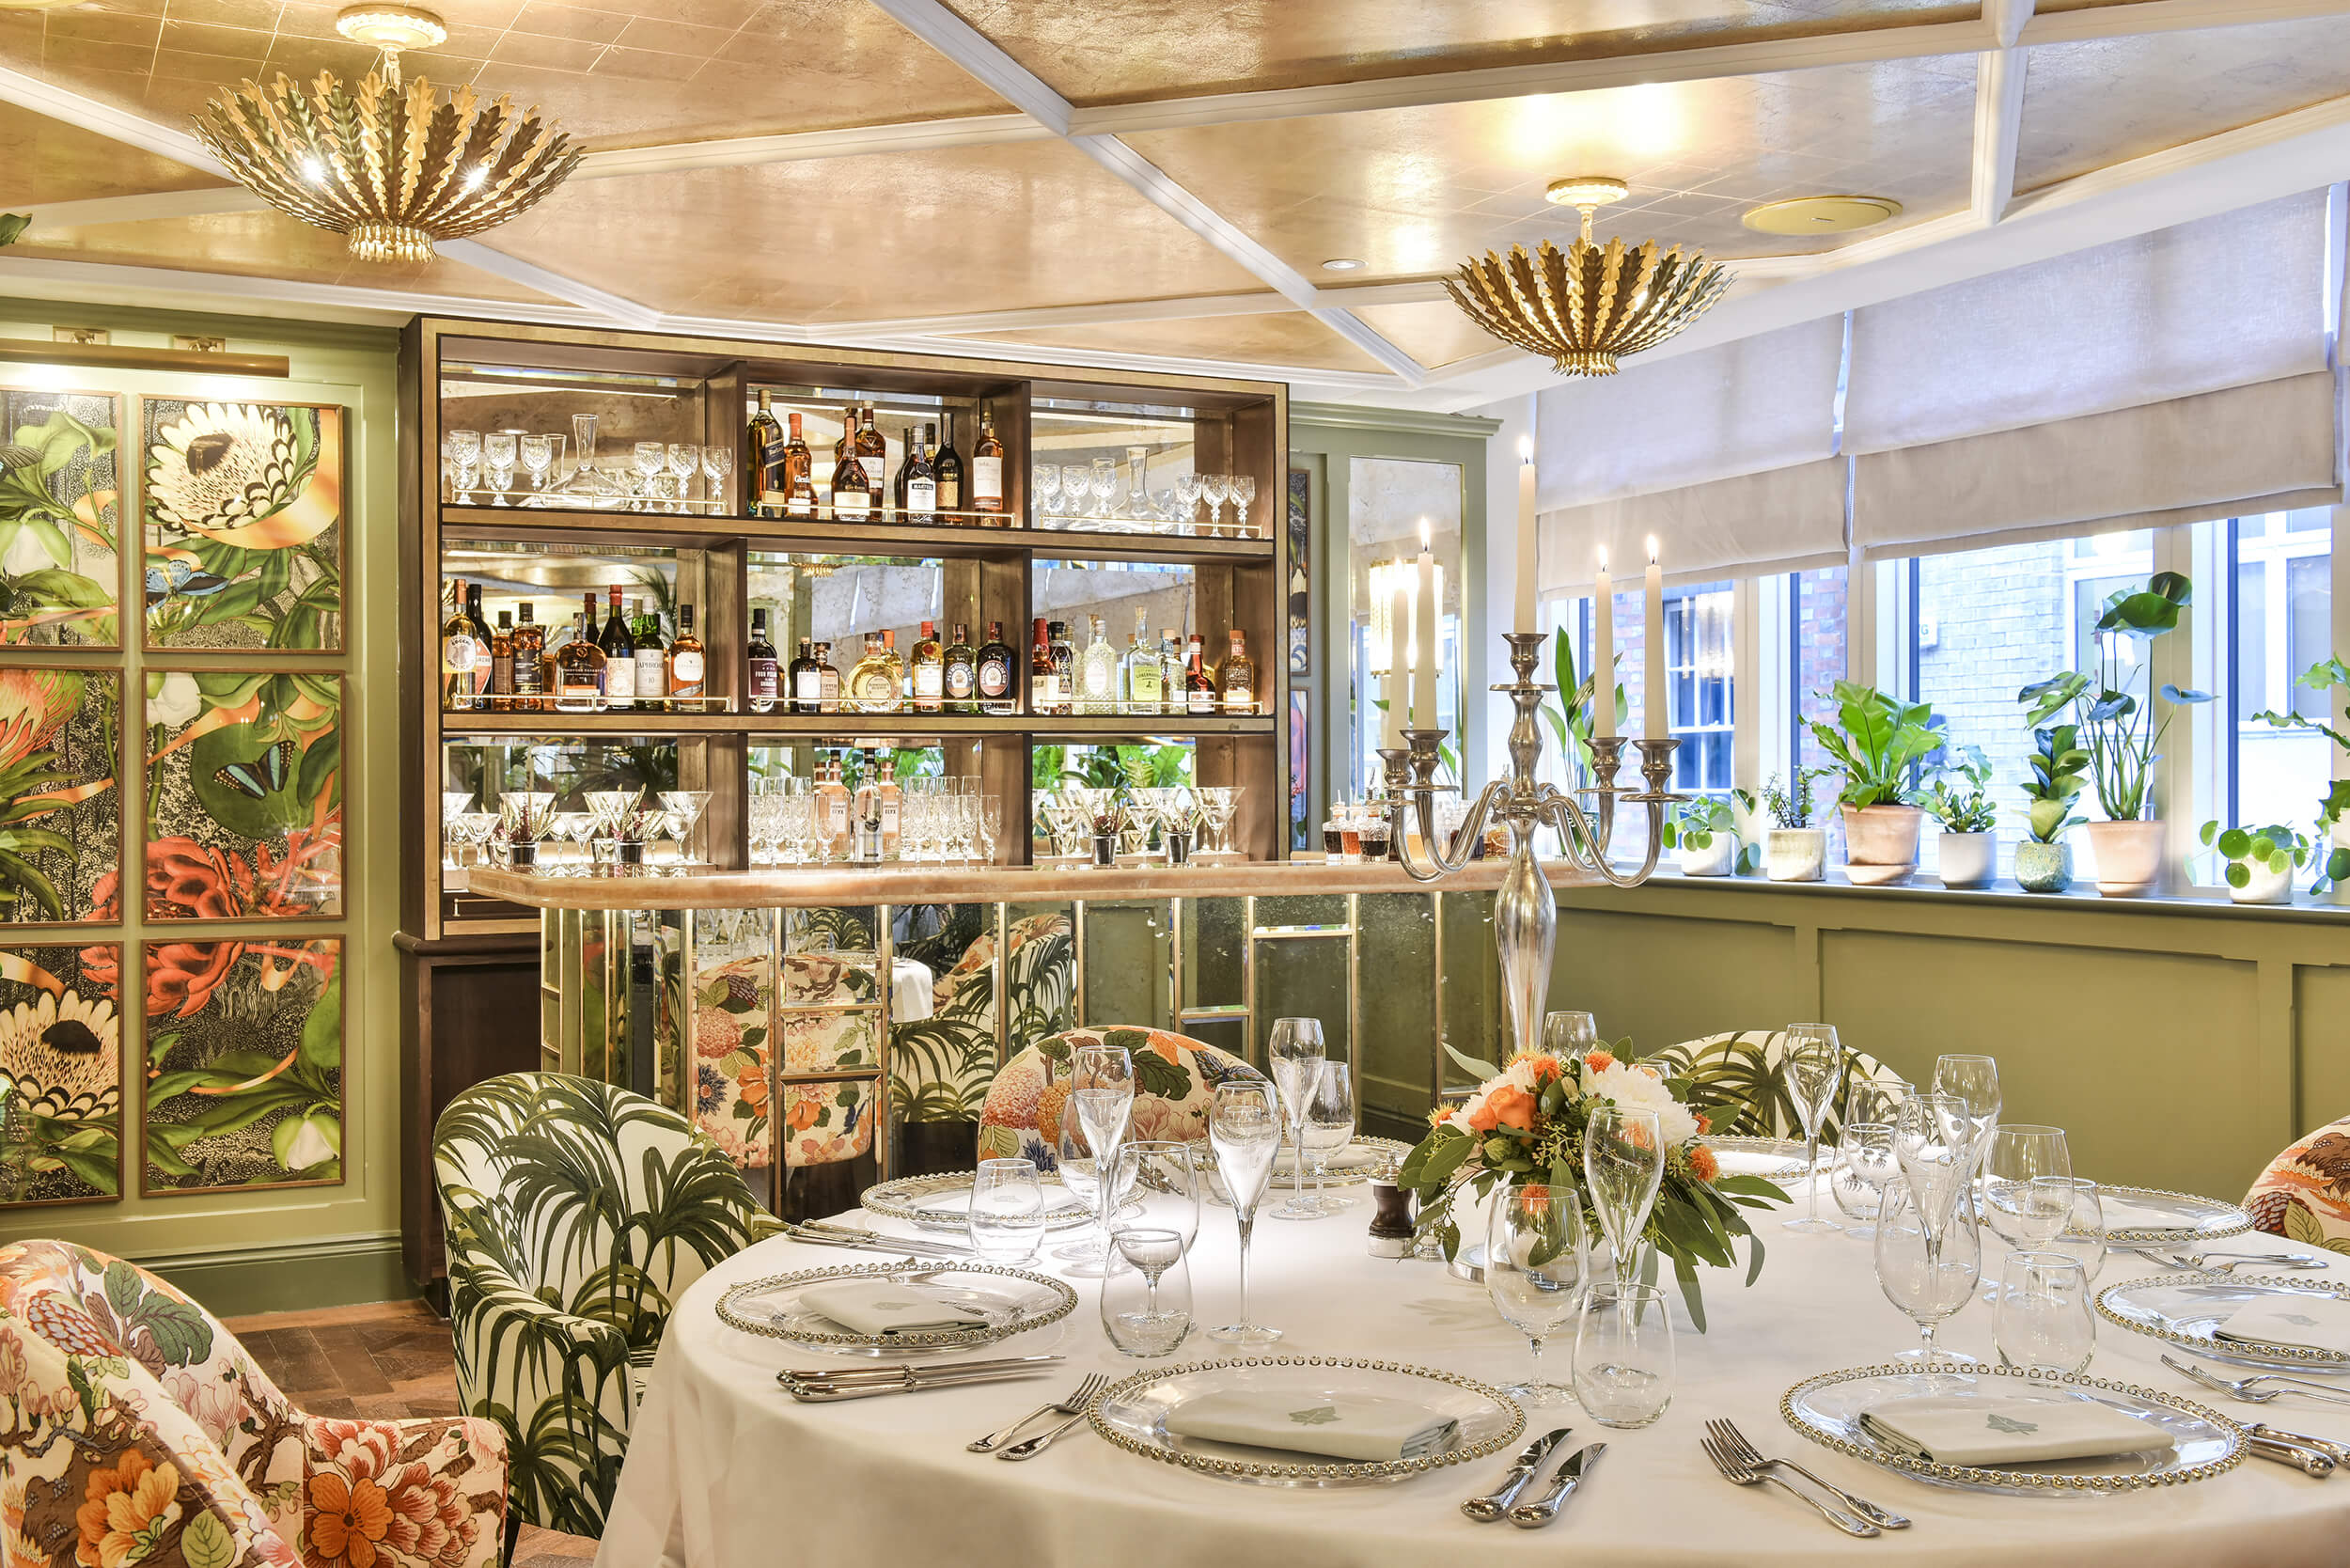 - The Ivy Oxford Brasserie